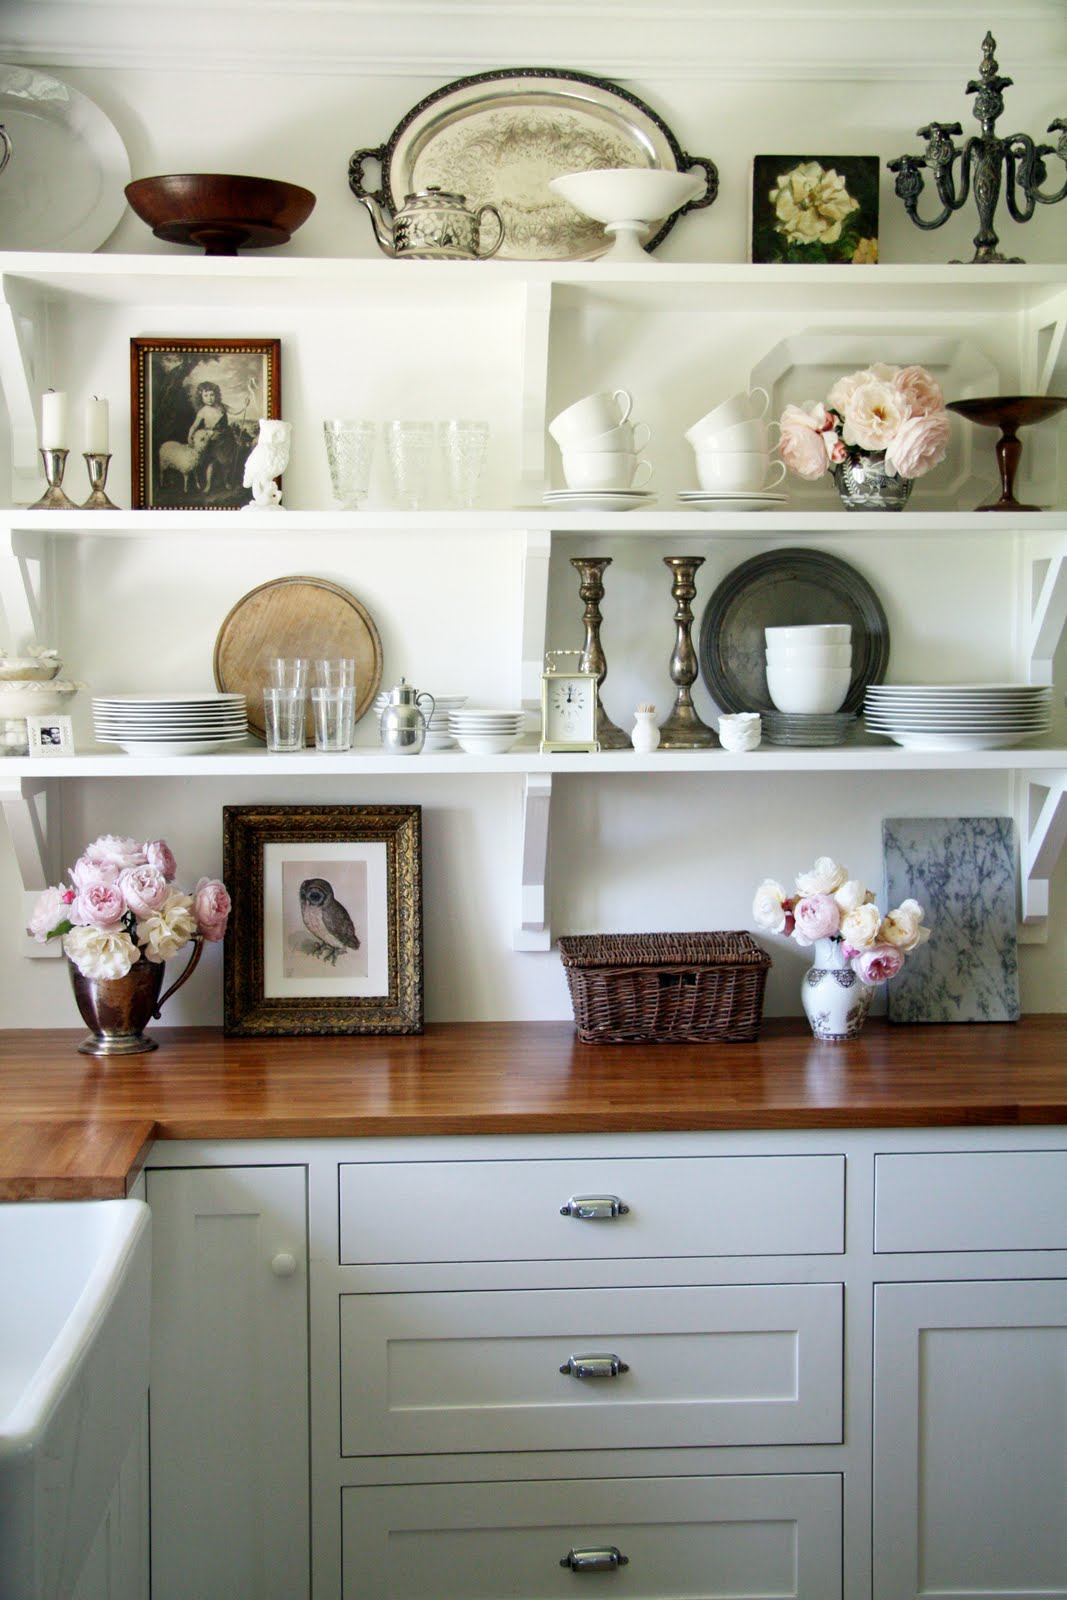 Kitchen planning and design open shelves in your kitchen for Small kitchen shelves